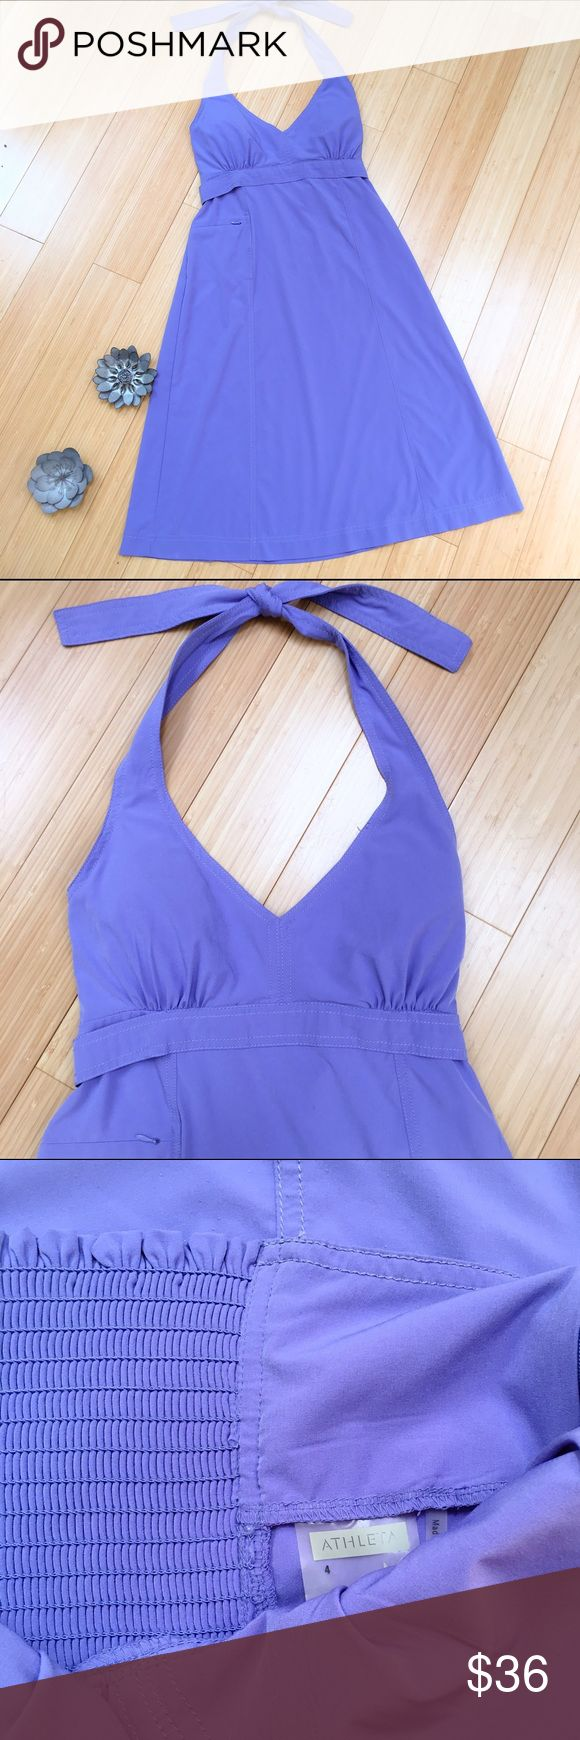 """ATHLETA periwinkle halter dress, 4. SO NICE halter dress by Athleta. Bra cups so you can ditch the bra (Hallelujah July and August!!!). Sz 4, great condition. Dress length is about 41"""". Athleta Dresses Midi"""